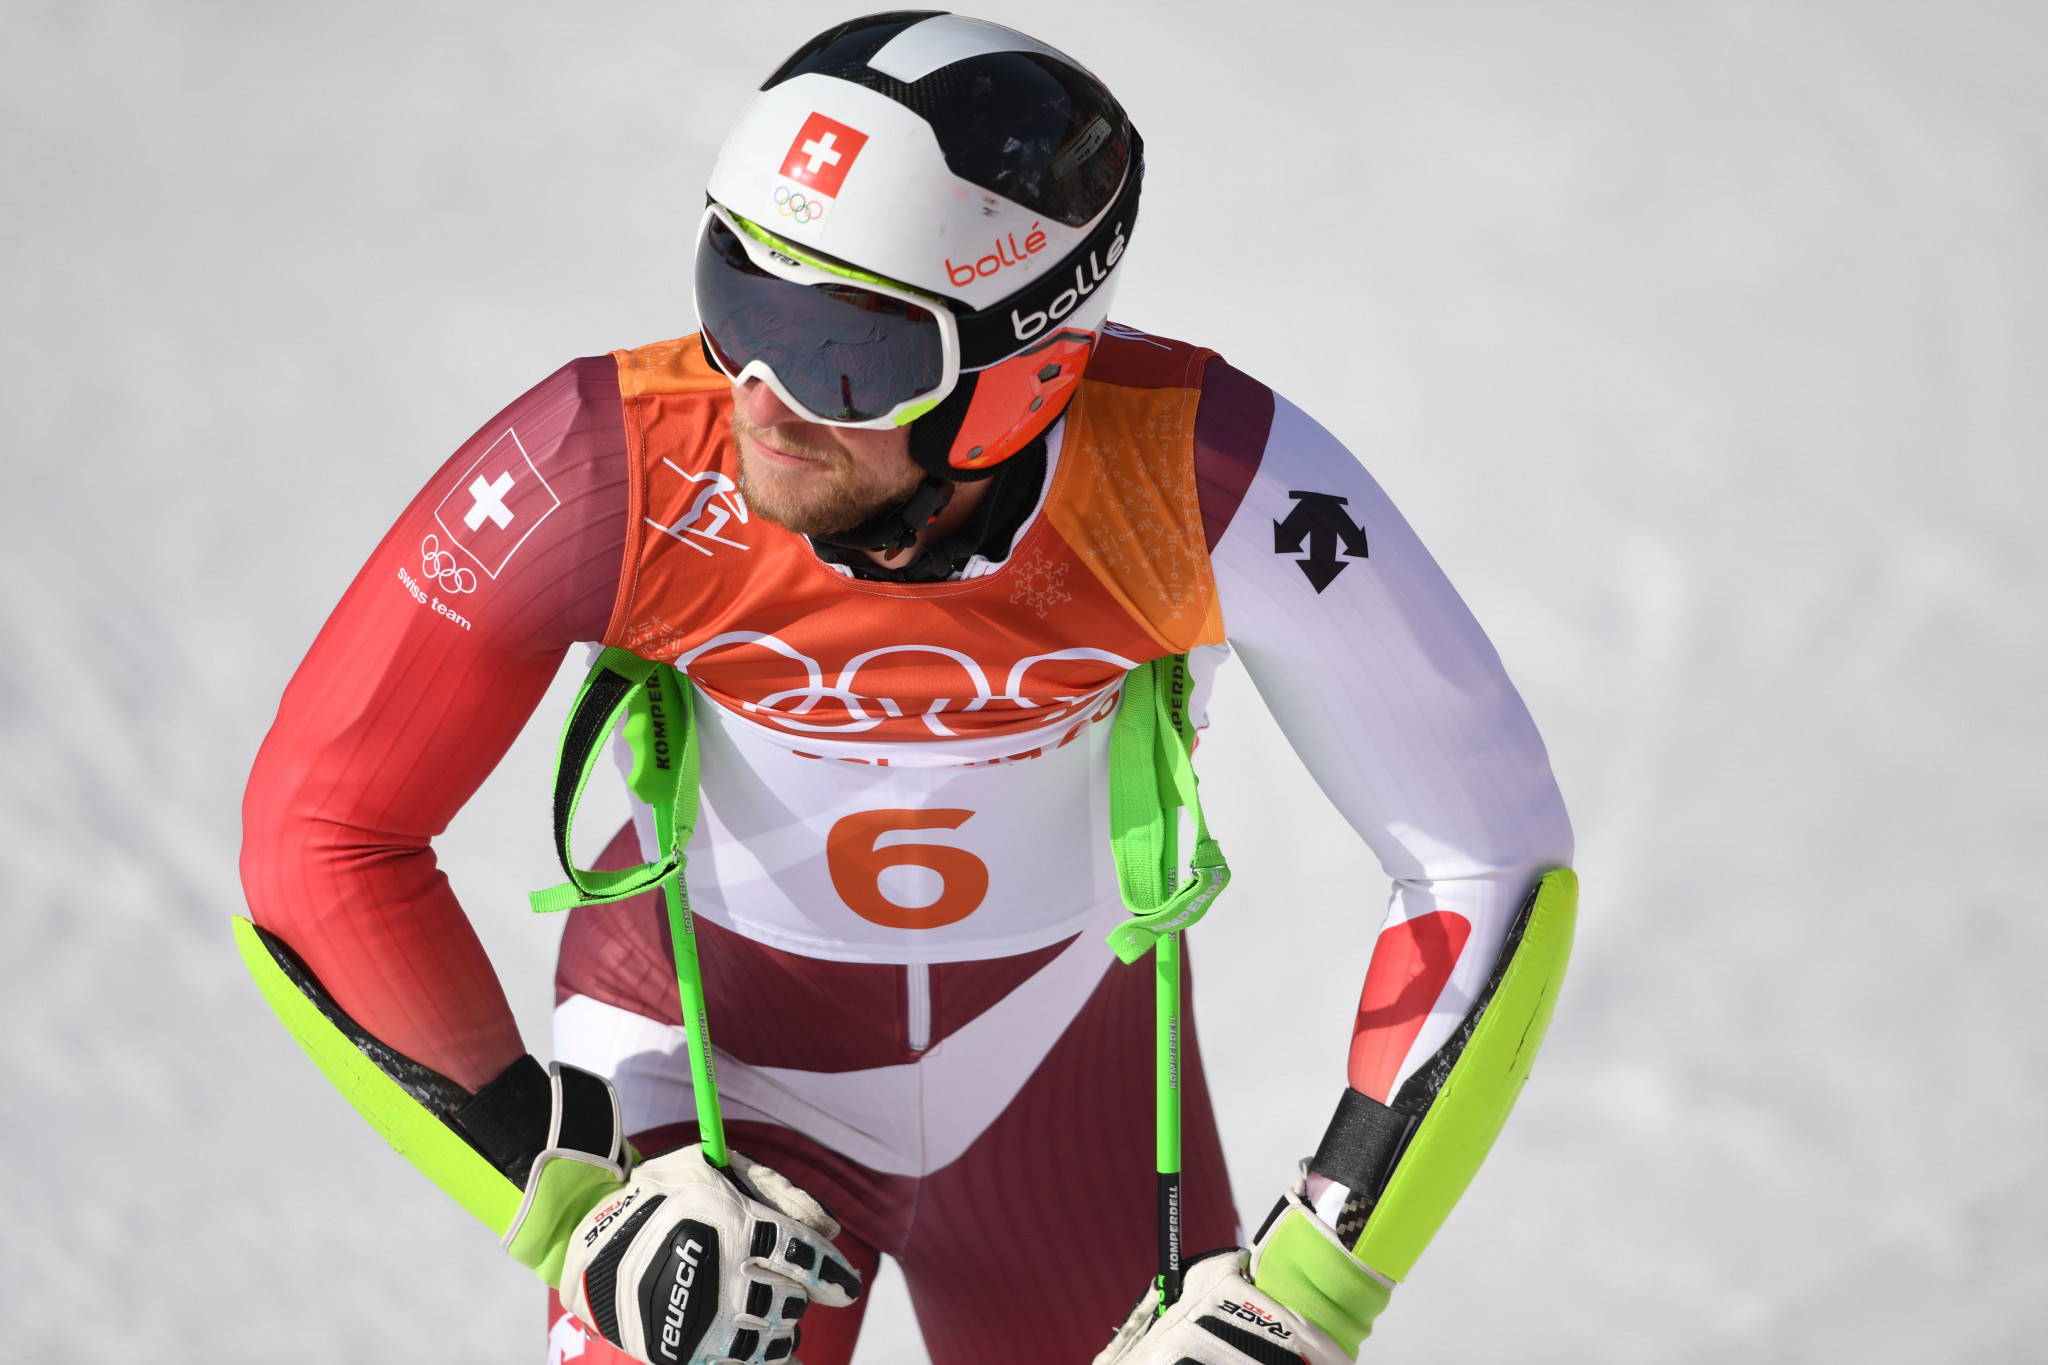 Murisier to miss entire Alpine skiing season after third serious knee injury of career